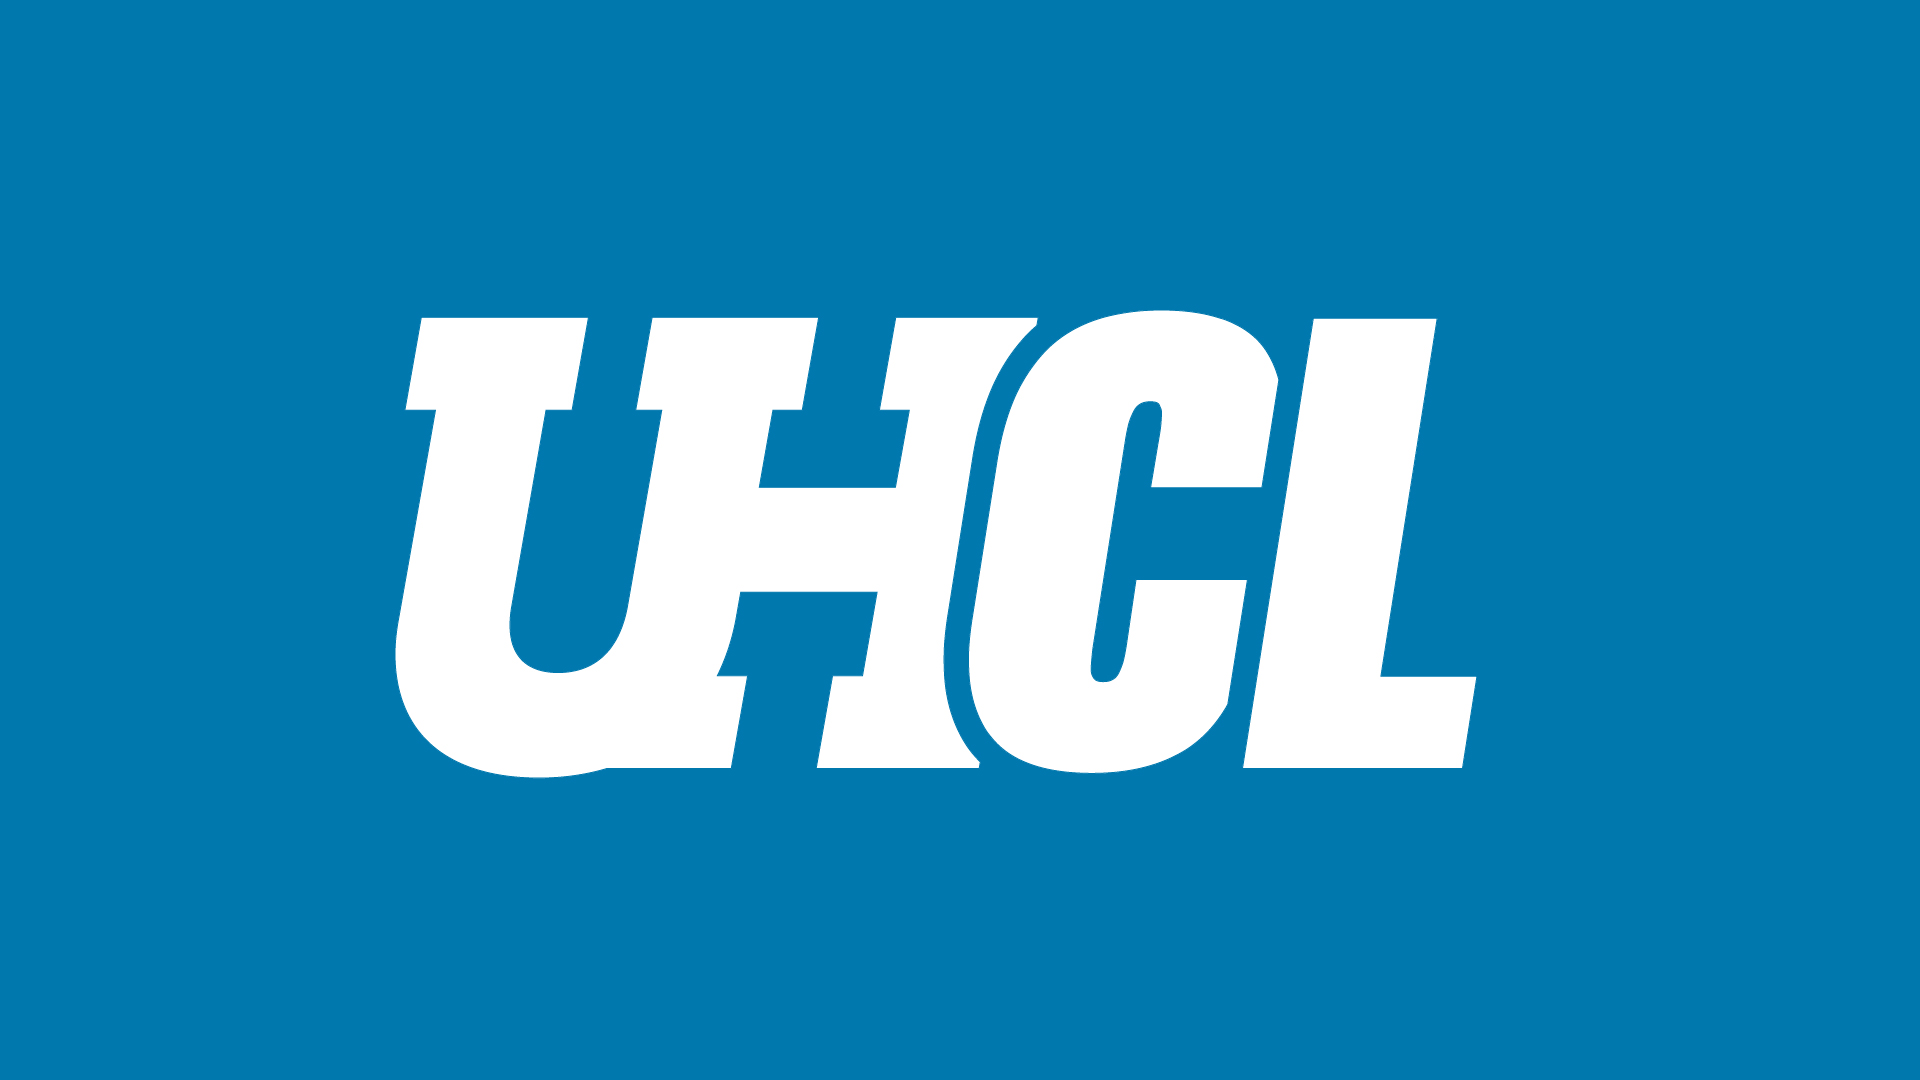 UHCL faculty and staff recognized for university service